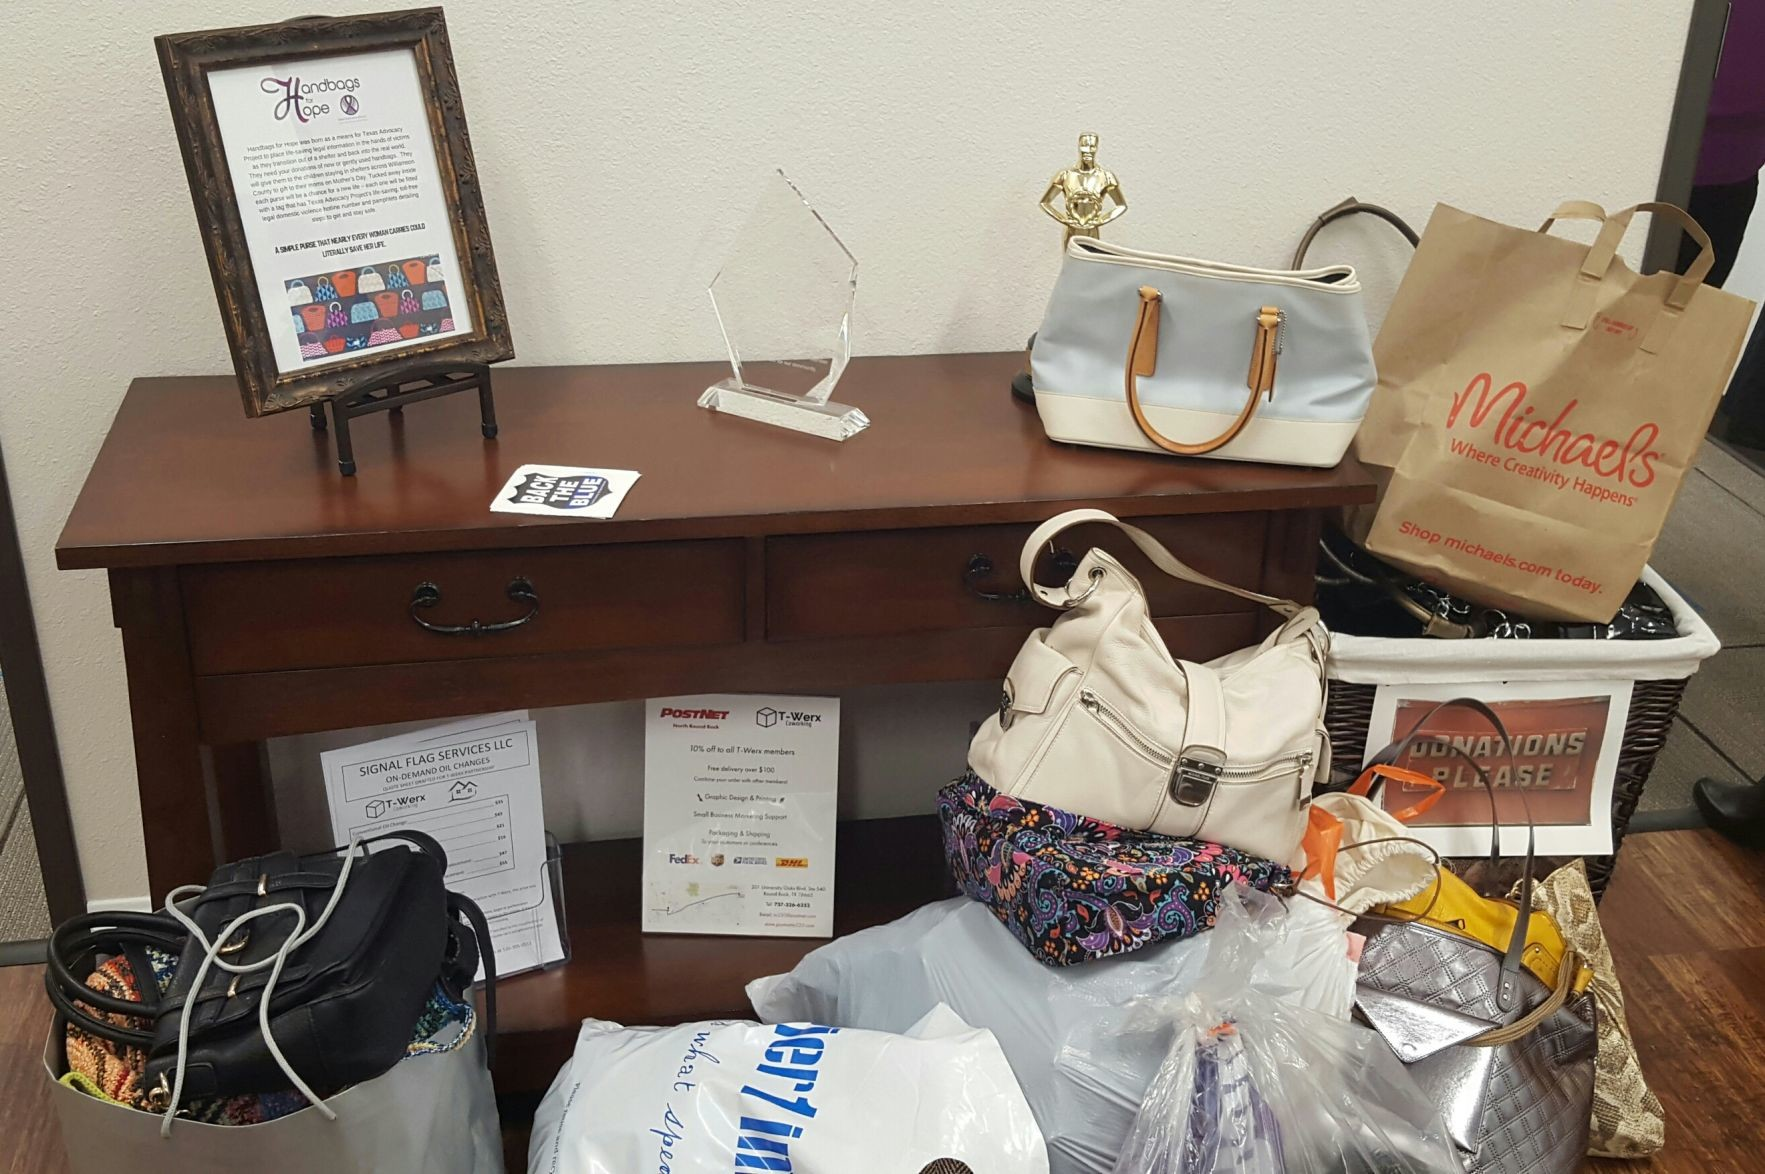 A basic handbag can save a life. Texas Advocacy Project, along with the Travis County Sheriff's Office, gives handbags to domestic violence victims to ultimately lead them to free legal help and safety.